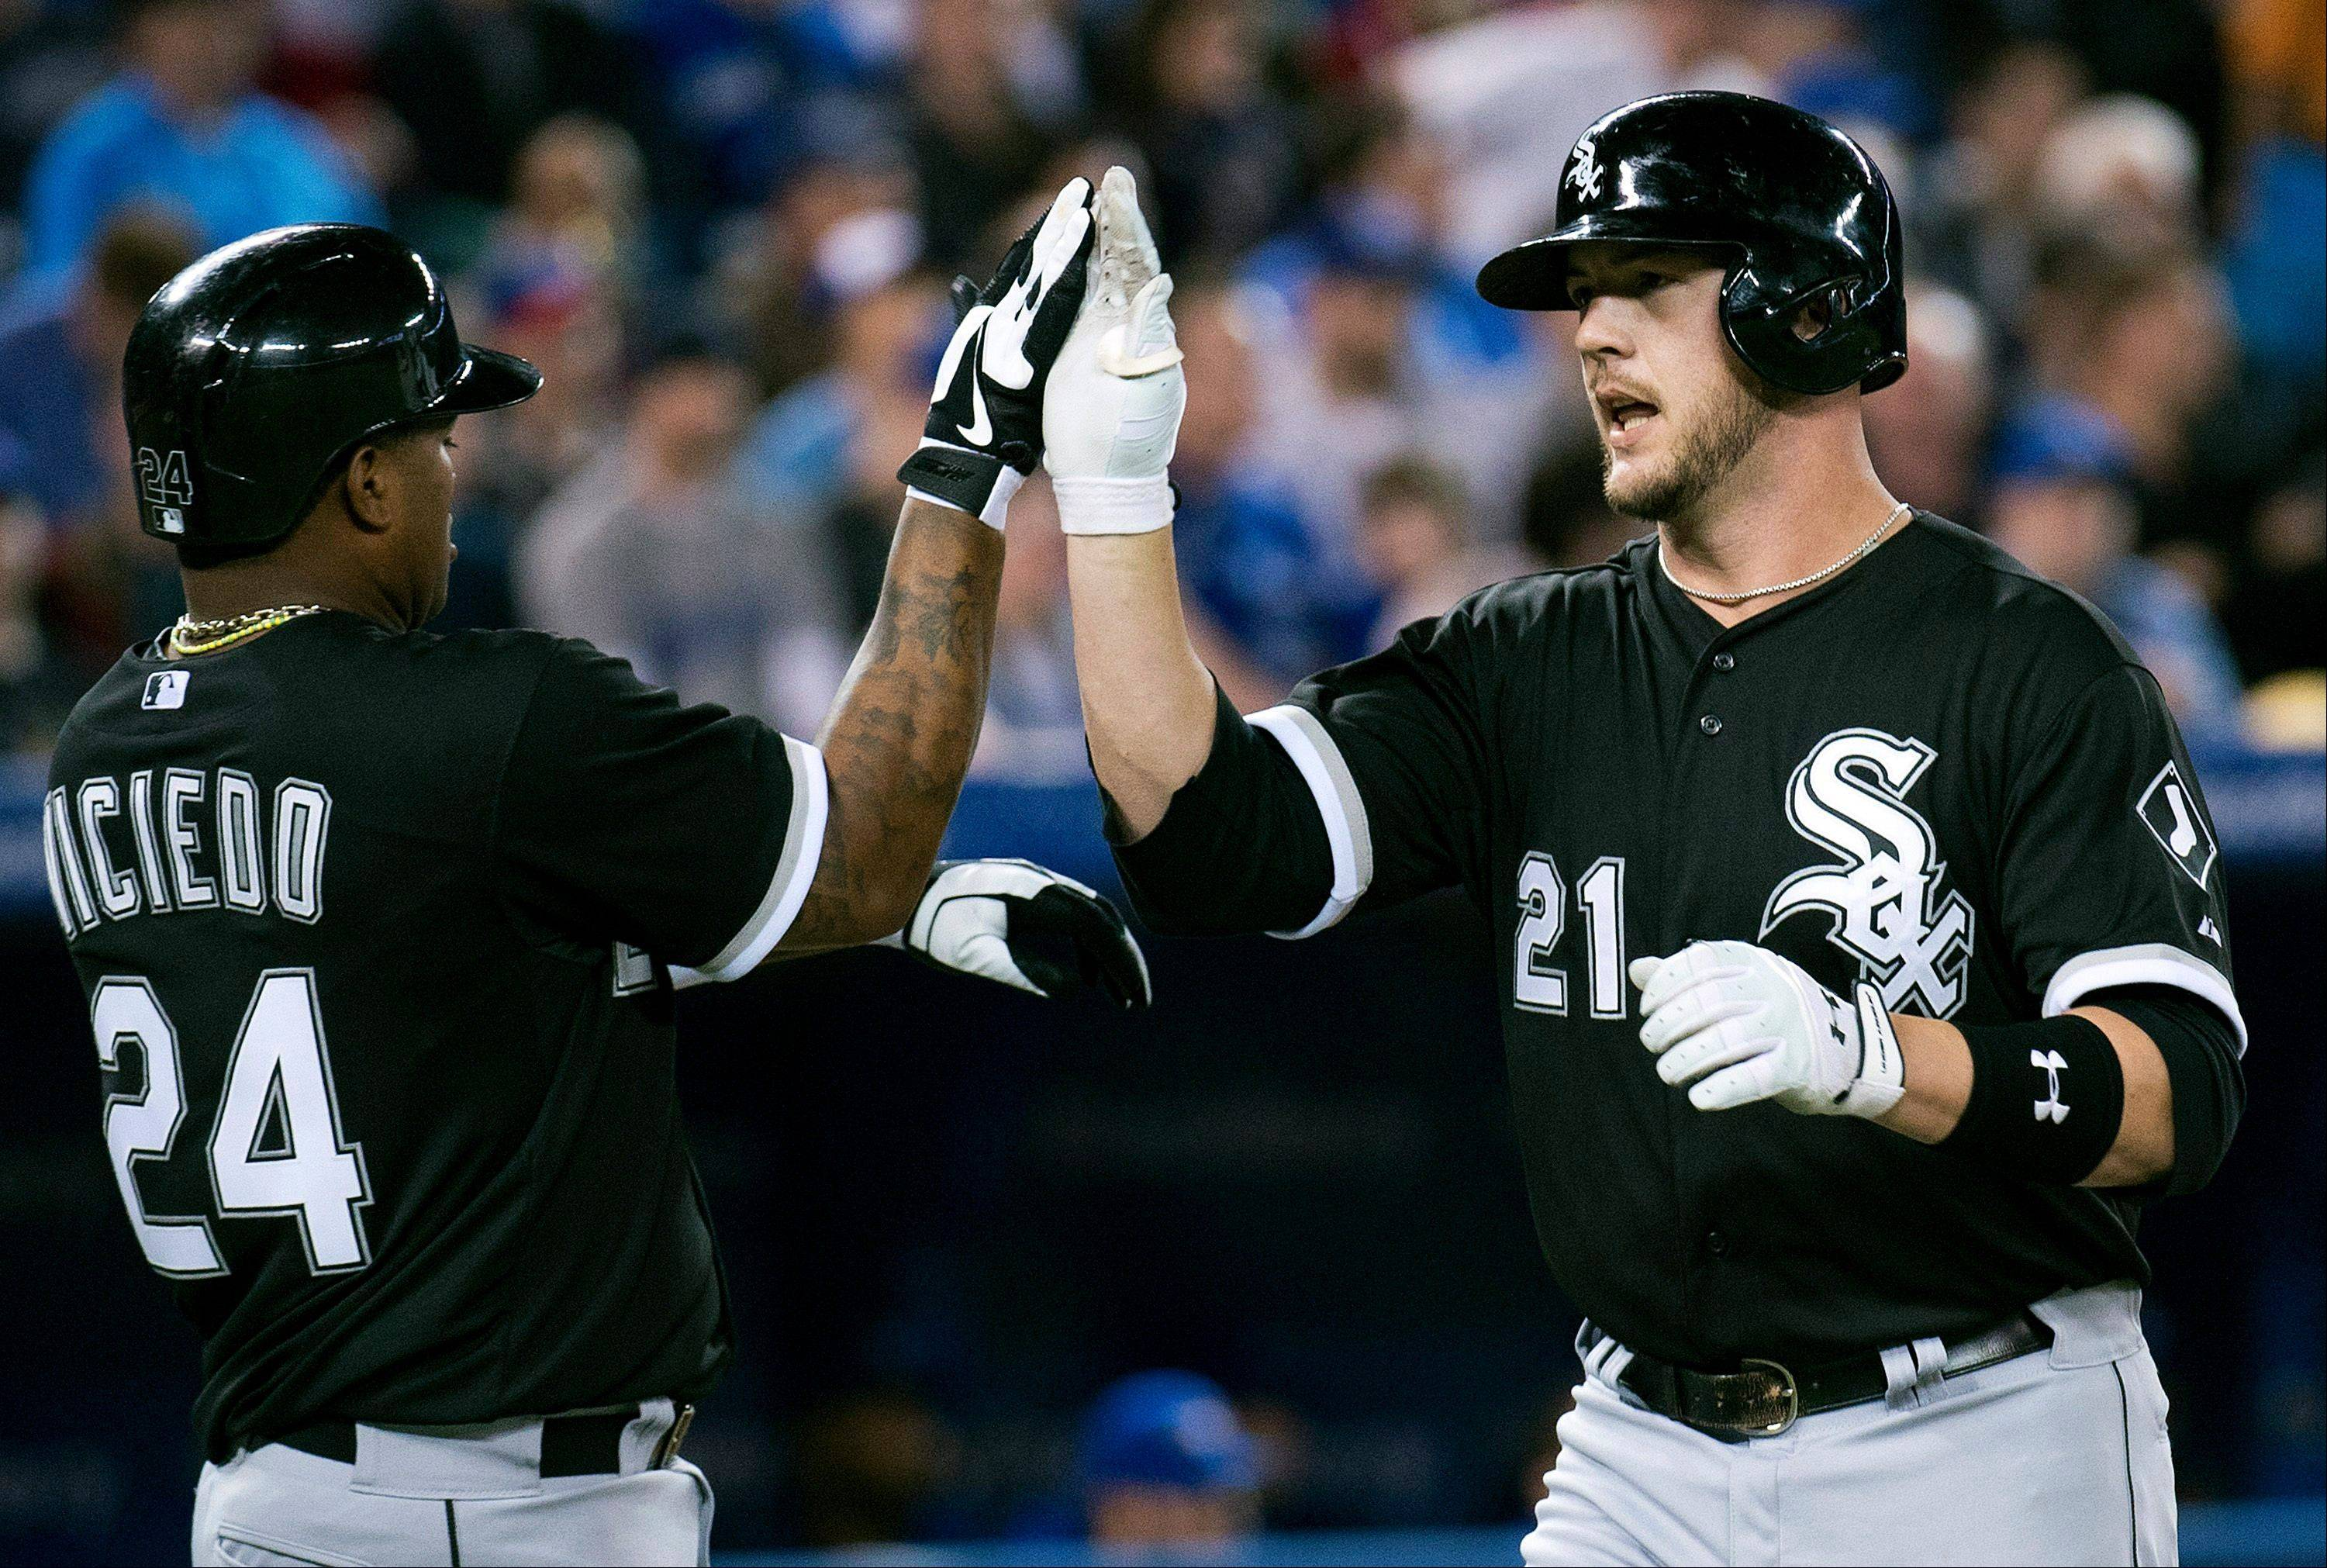 Chicago White Sox catcher Tyler Flowers, right, celebrates his three-run home run with teammate Dayan Viciedo, left, during the second inning of a baseball game in Toronto on Wednesday April 17, 2013.